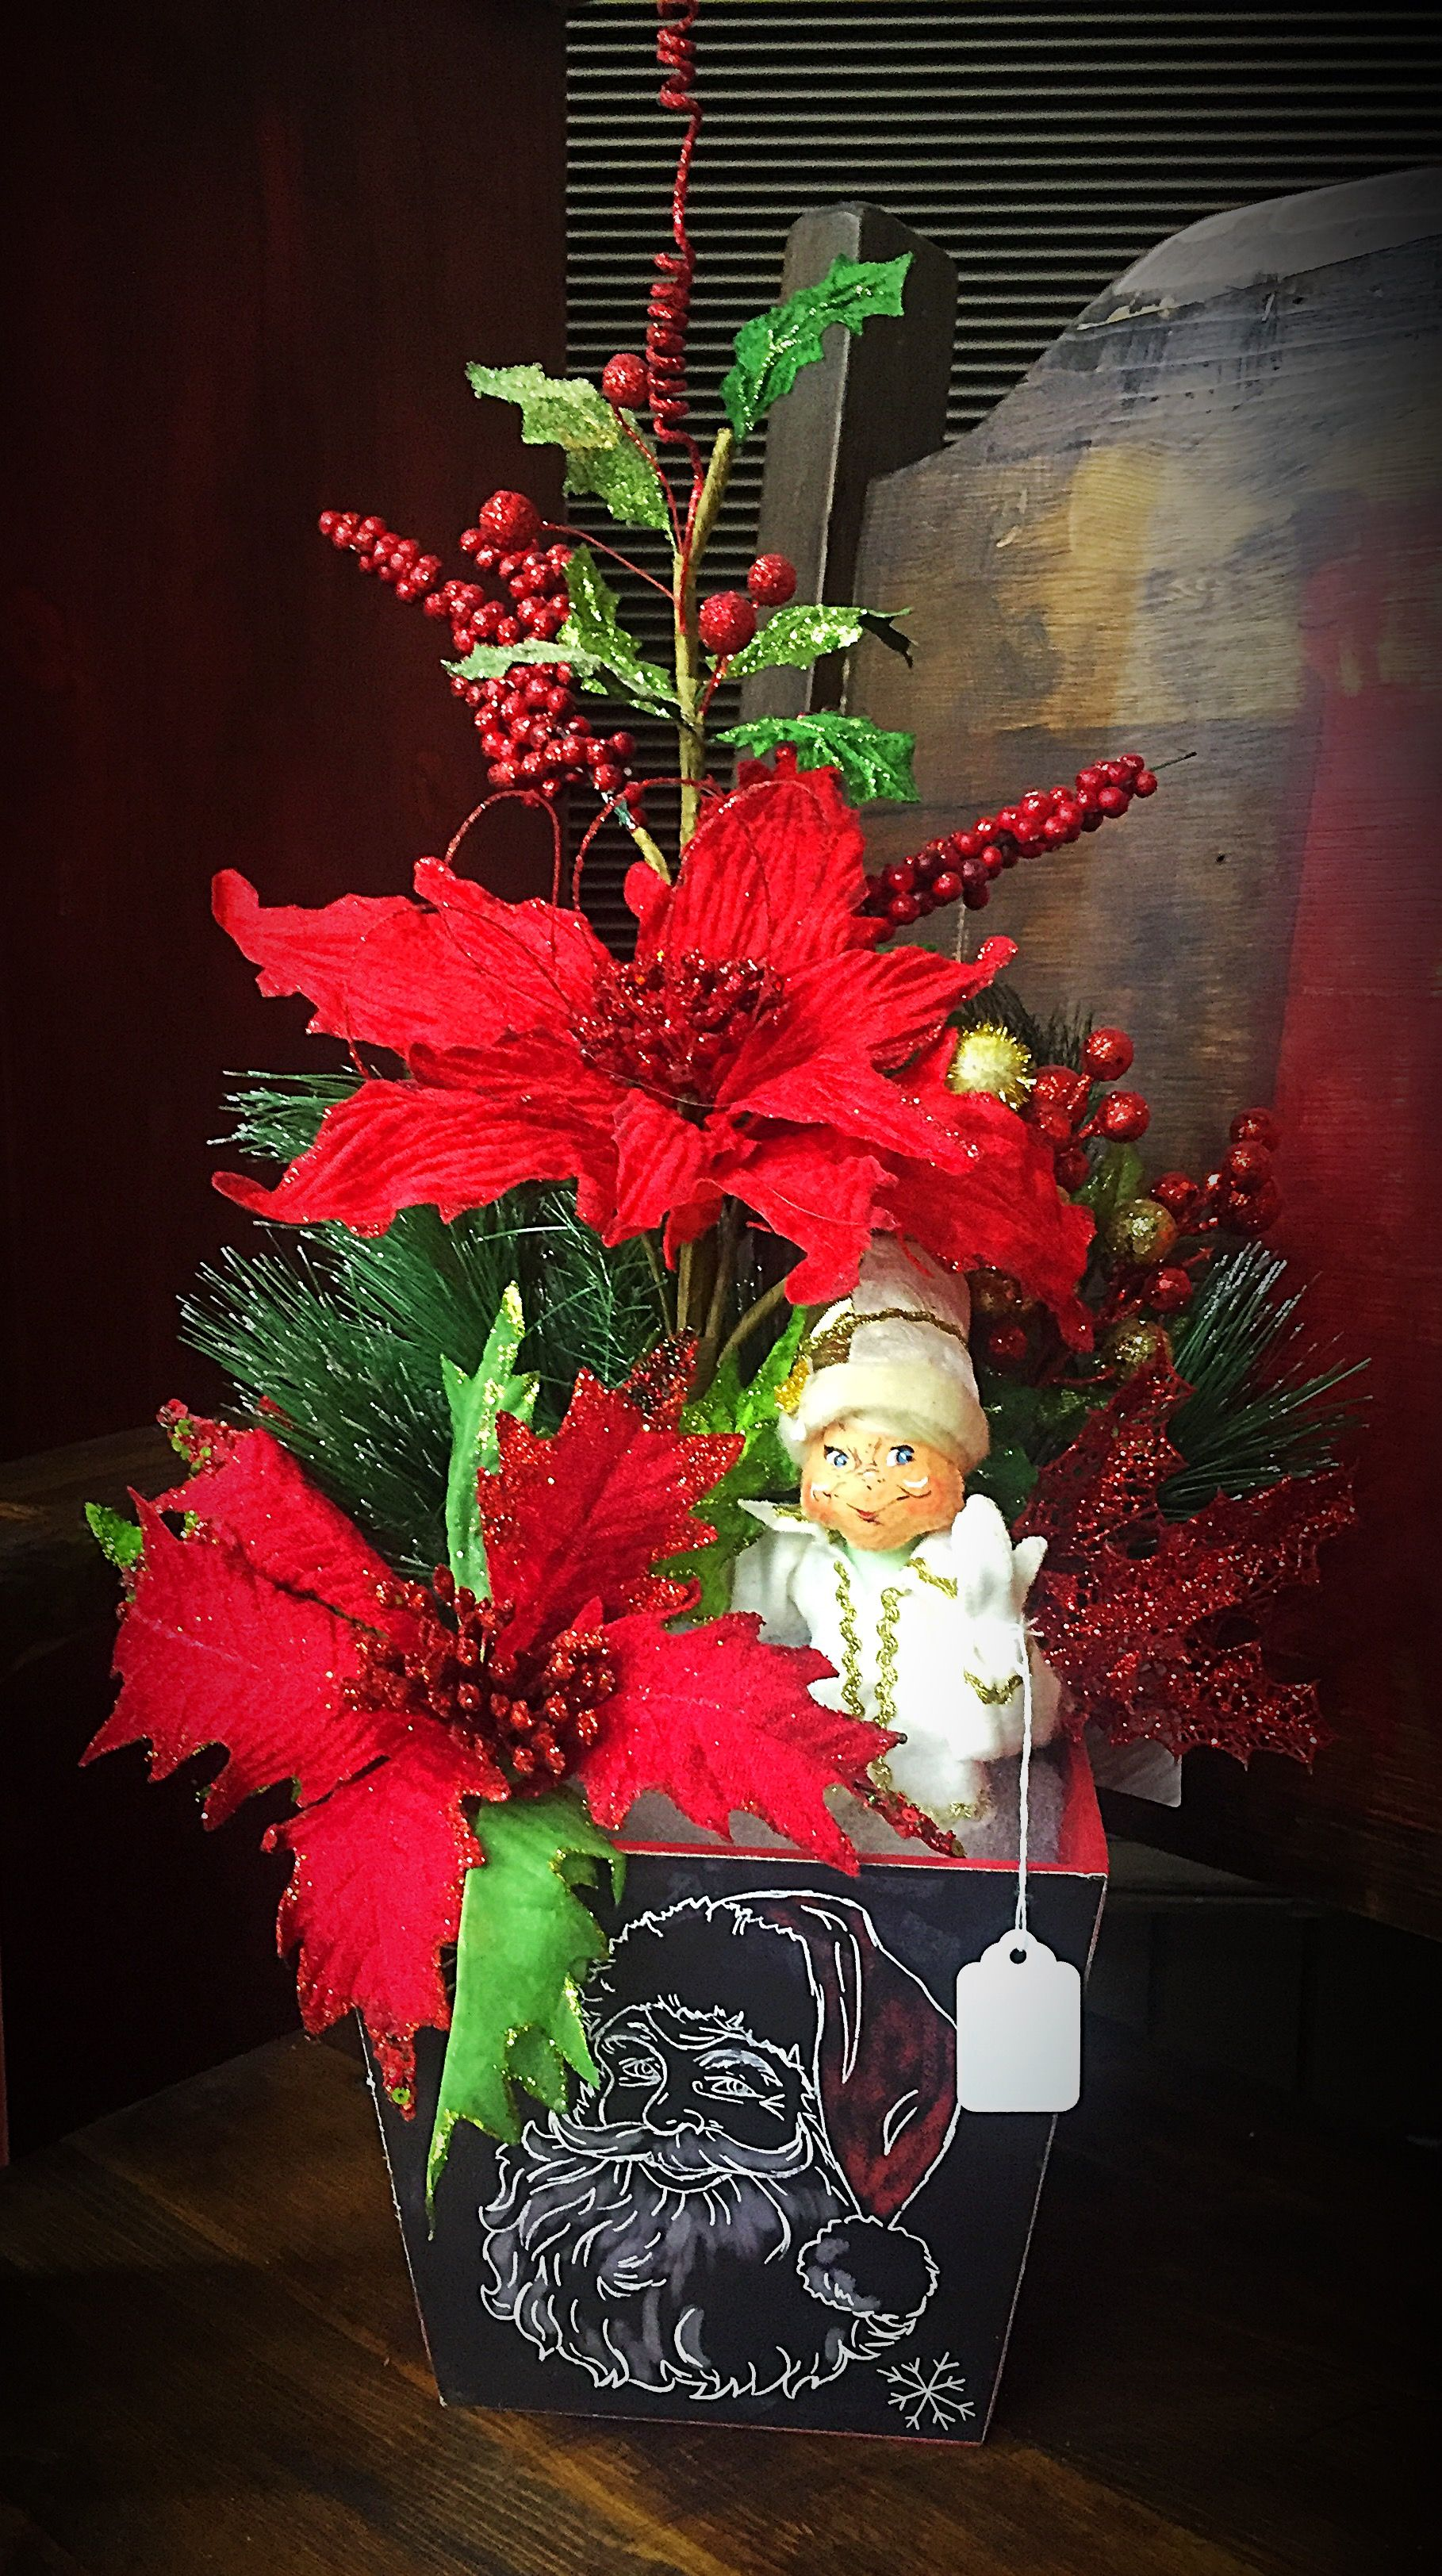 Christmas Elf and Red Poinsettia Floral Arrangement